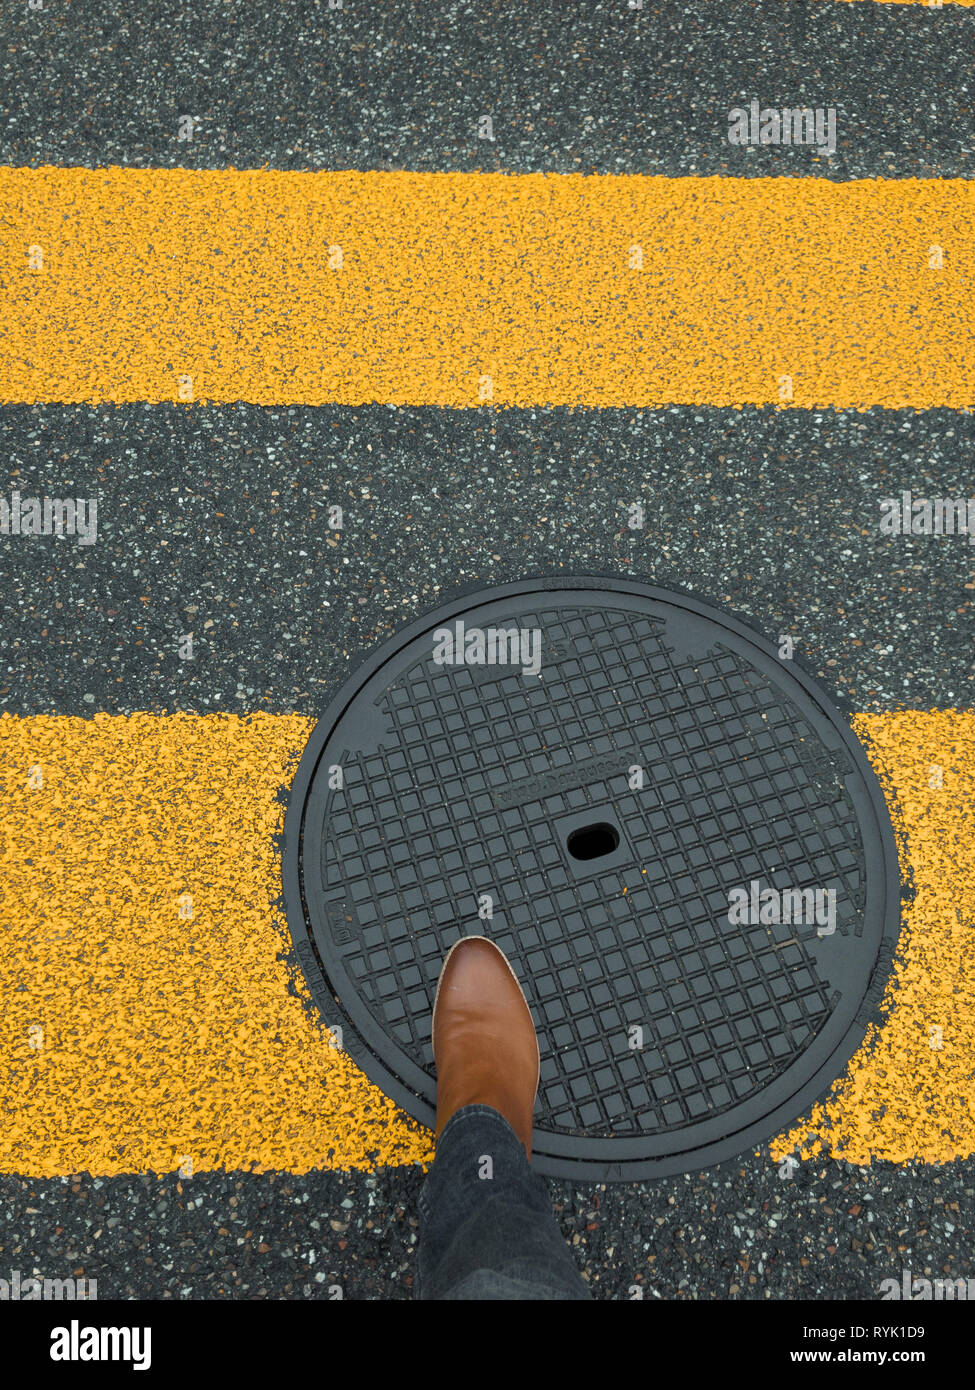 pedestrian sign on pavement with feet - Stock Image